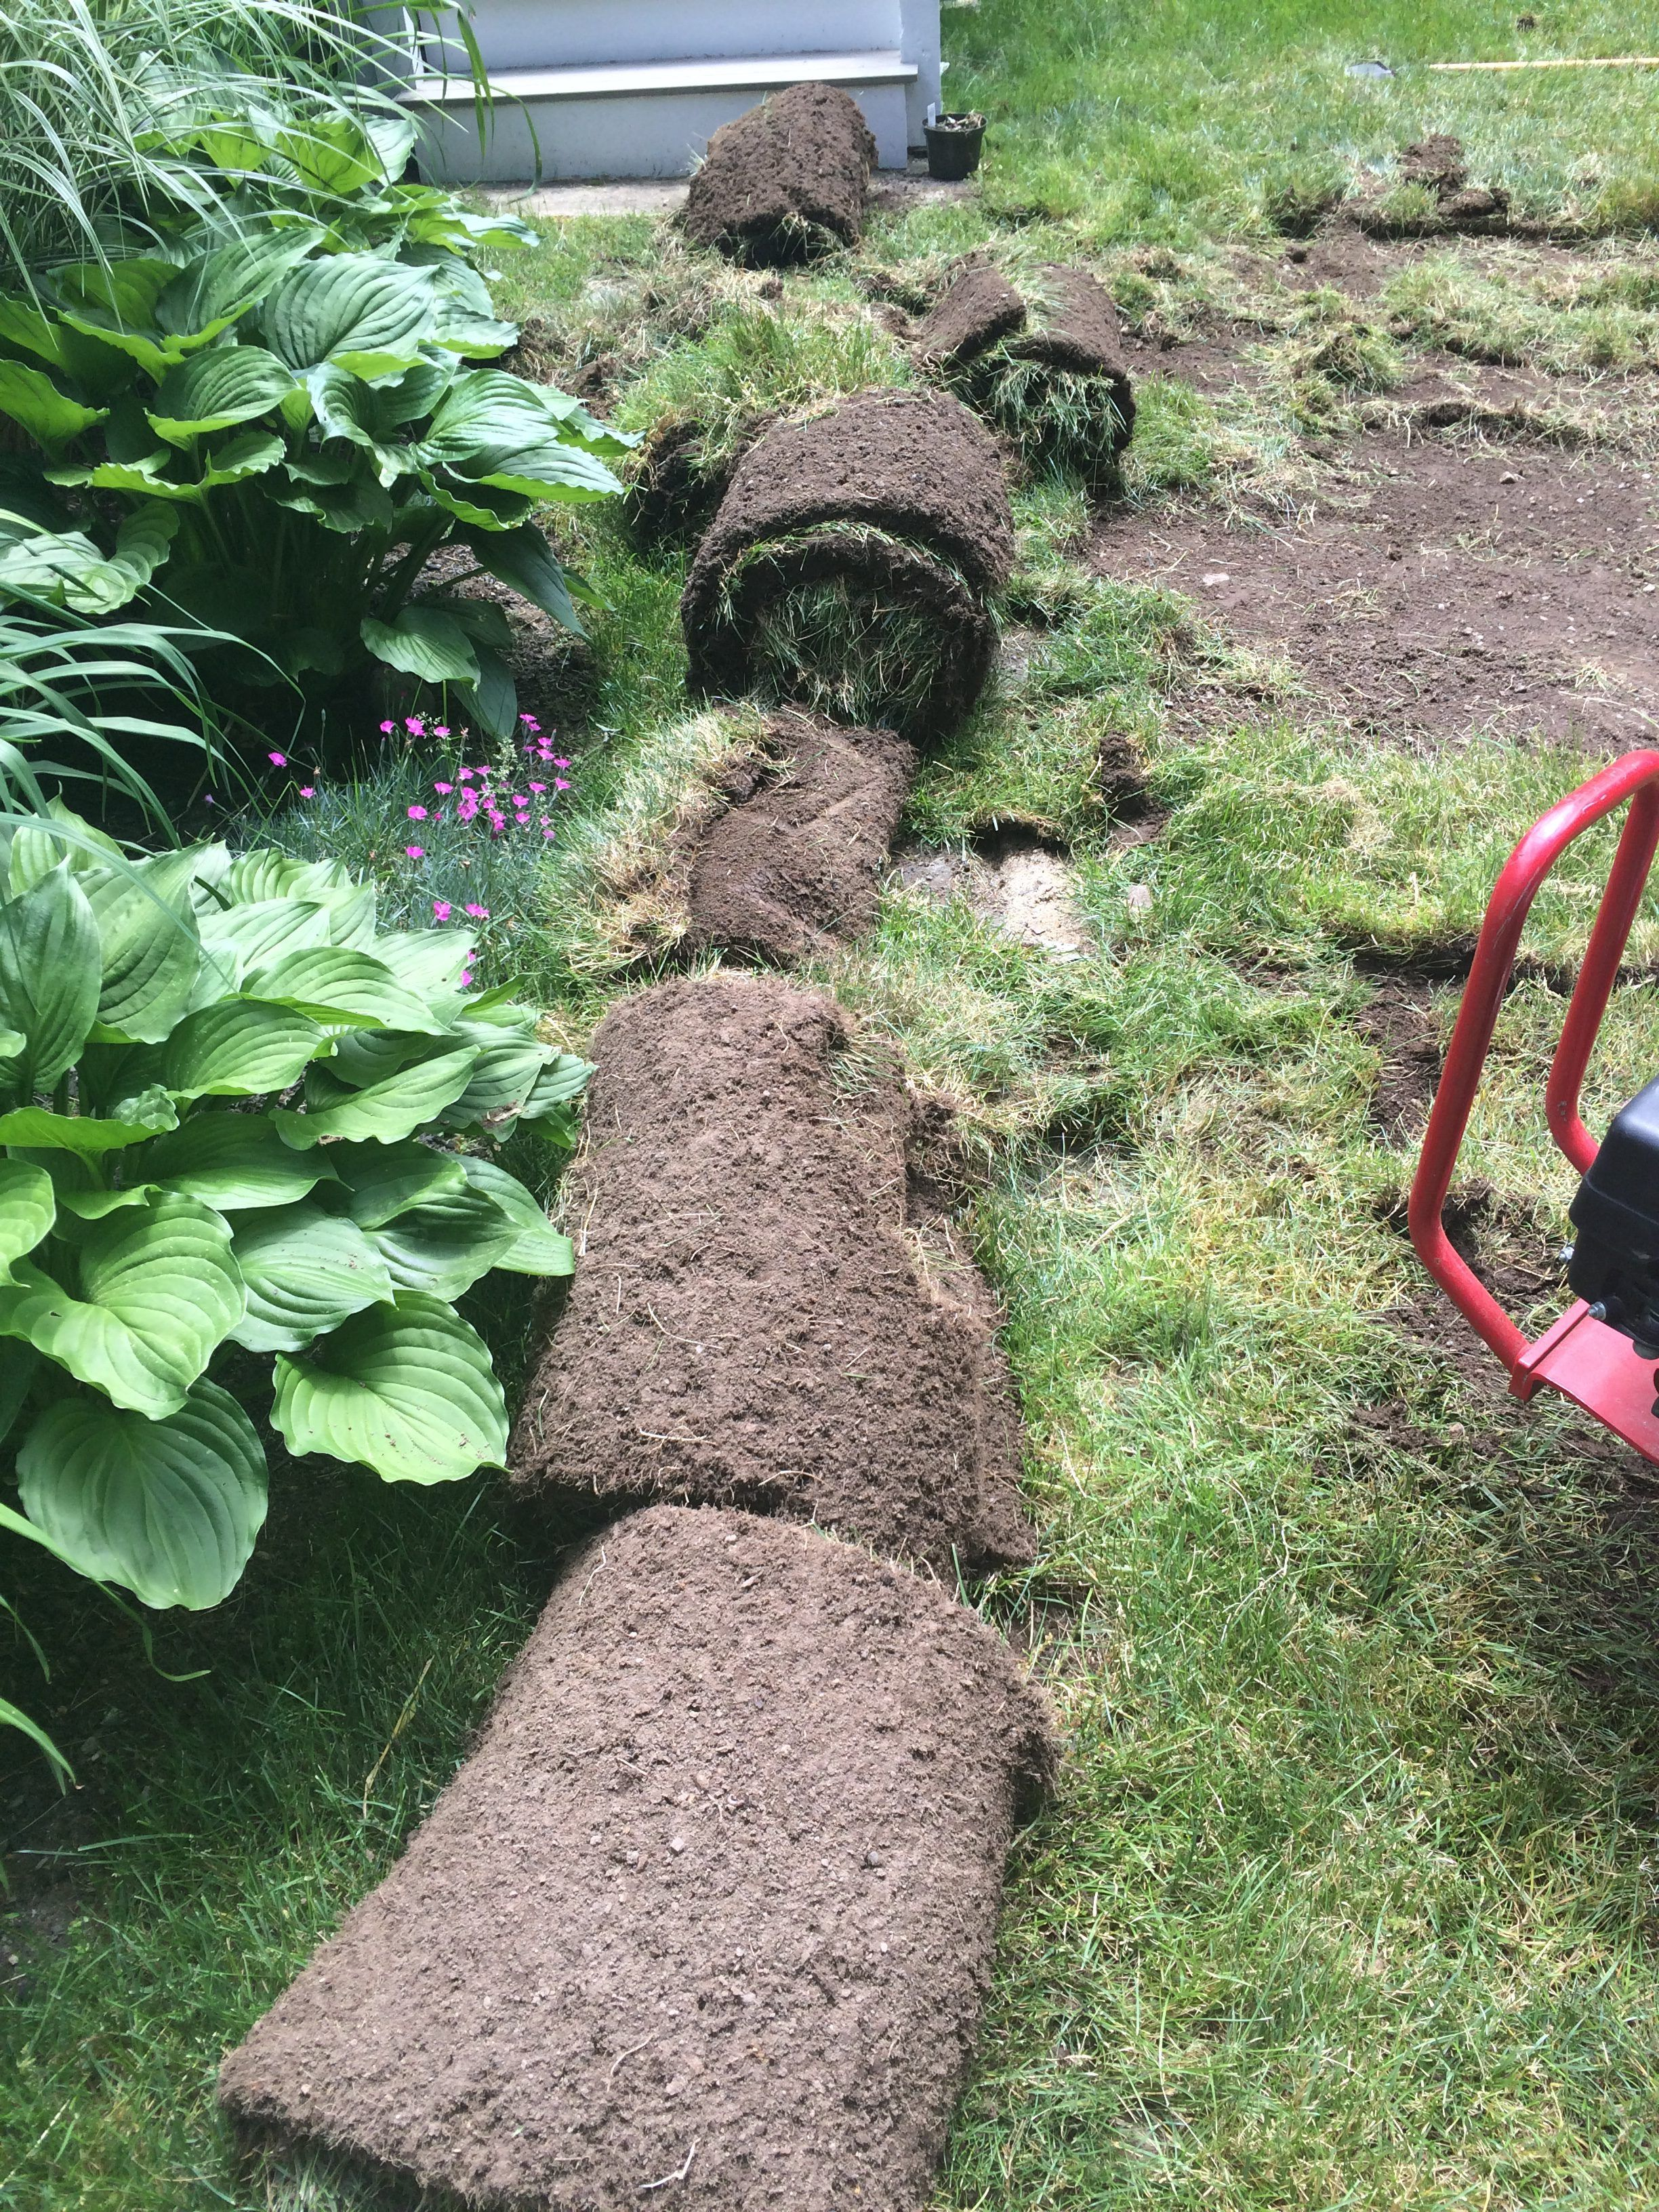 How To Diy A Fire Pit Pea Stone Patio Start To Finish Patio Stones Pea Stone Backyard Adventure